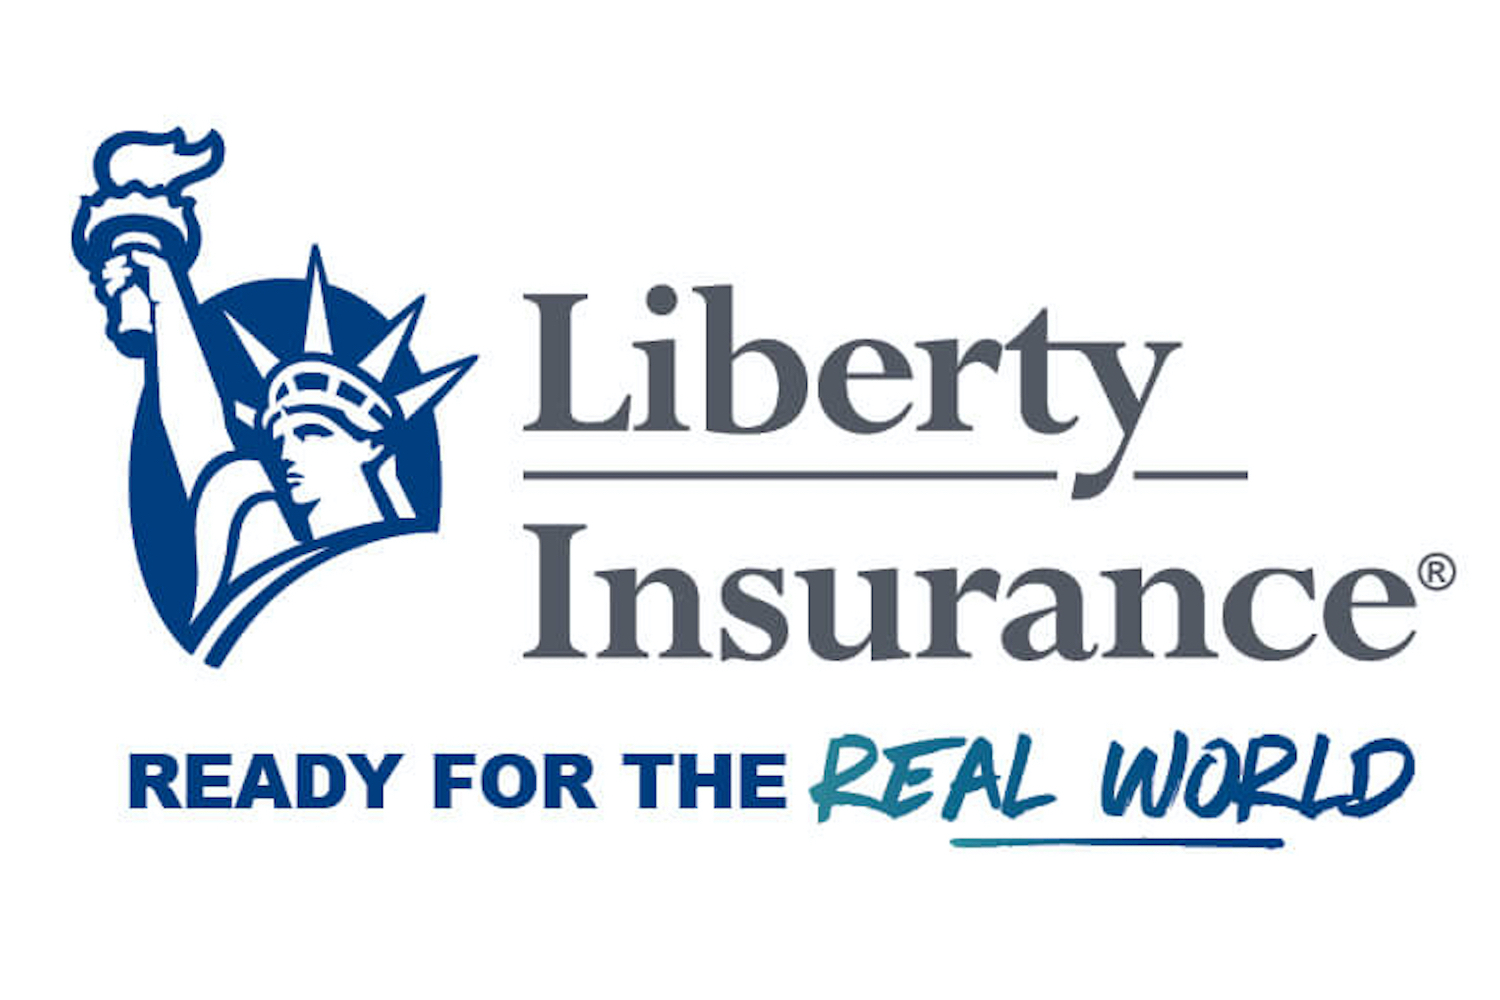 Car News | Liberty Insurance to give rebates on policies | CompleteCar.ie